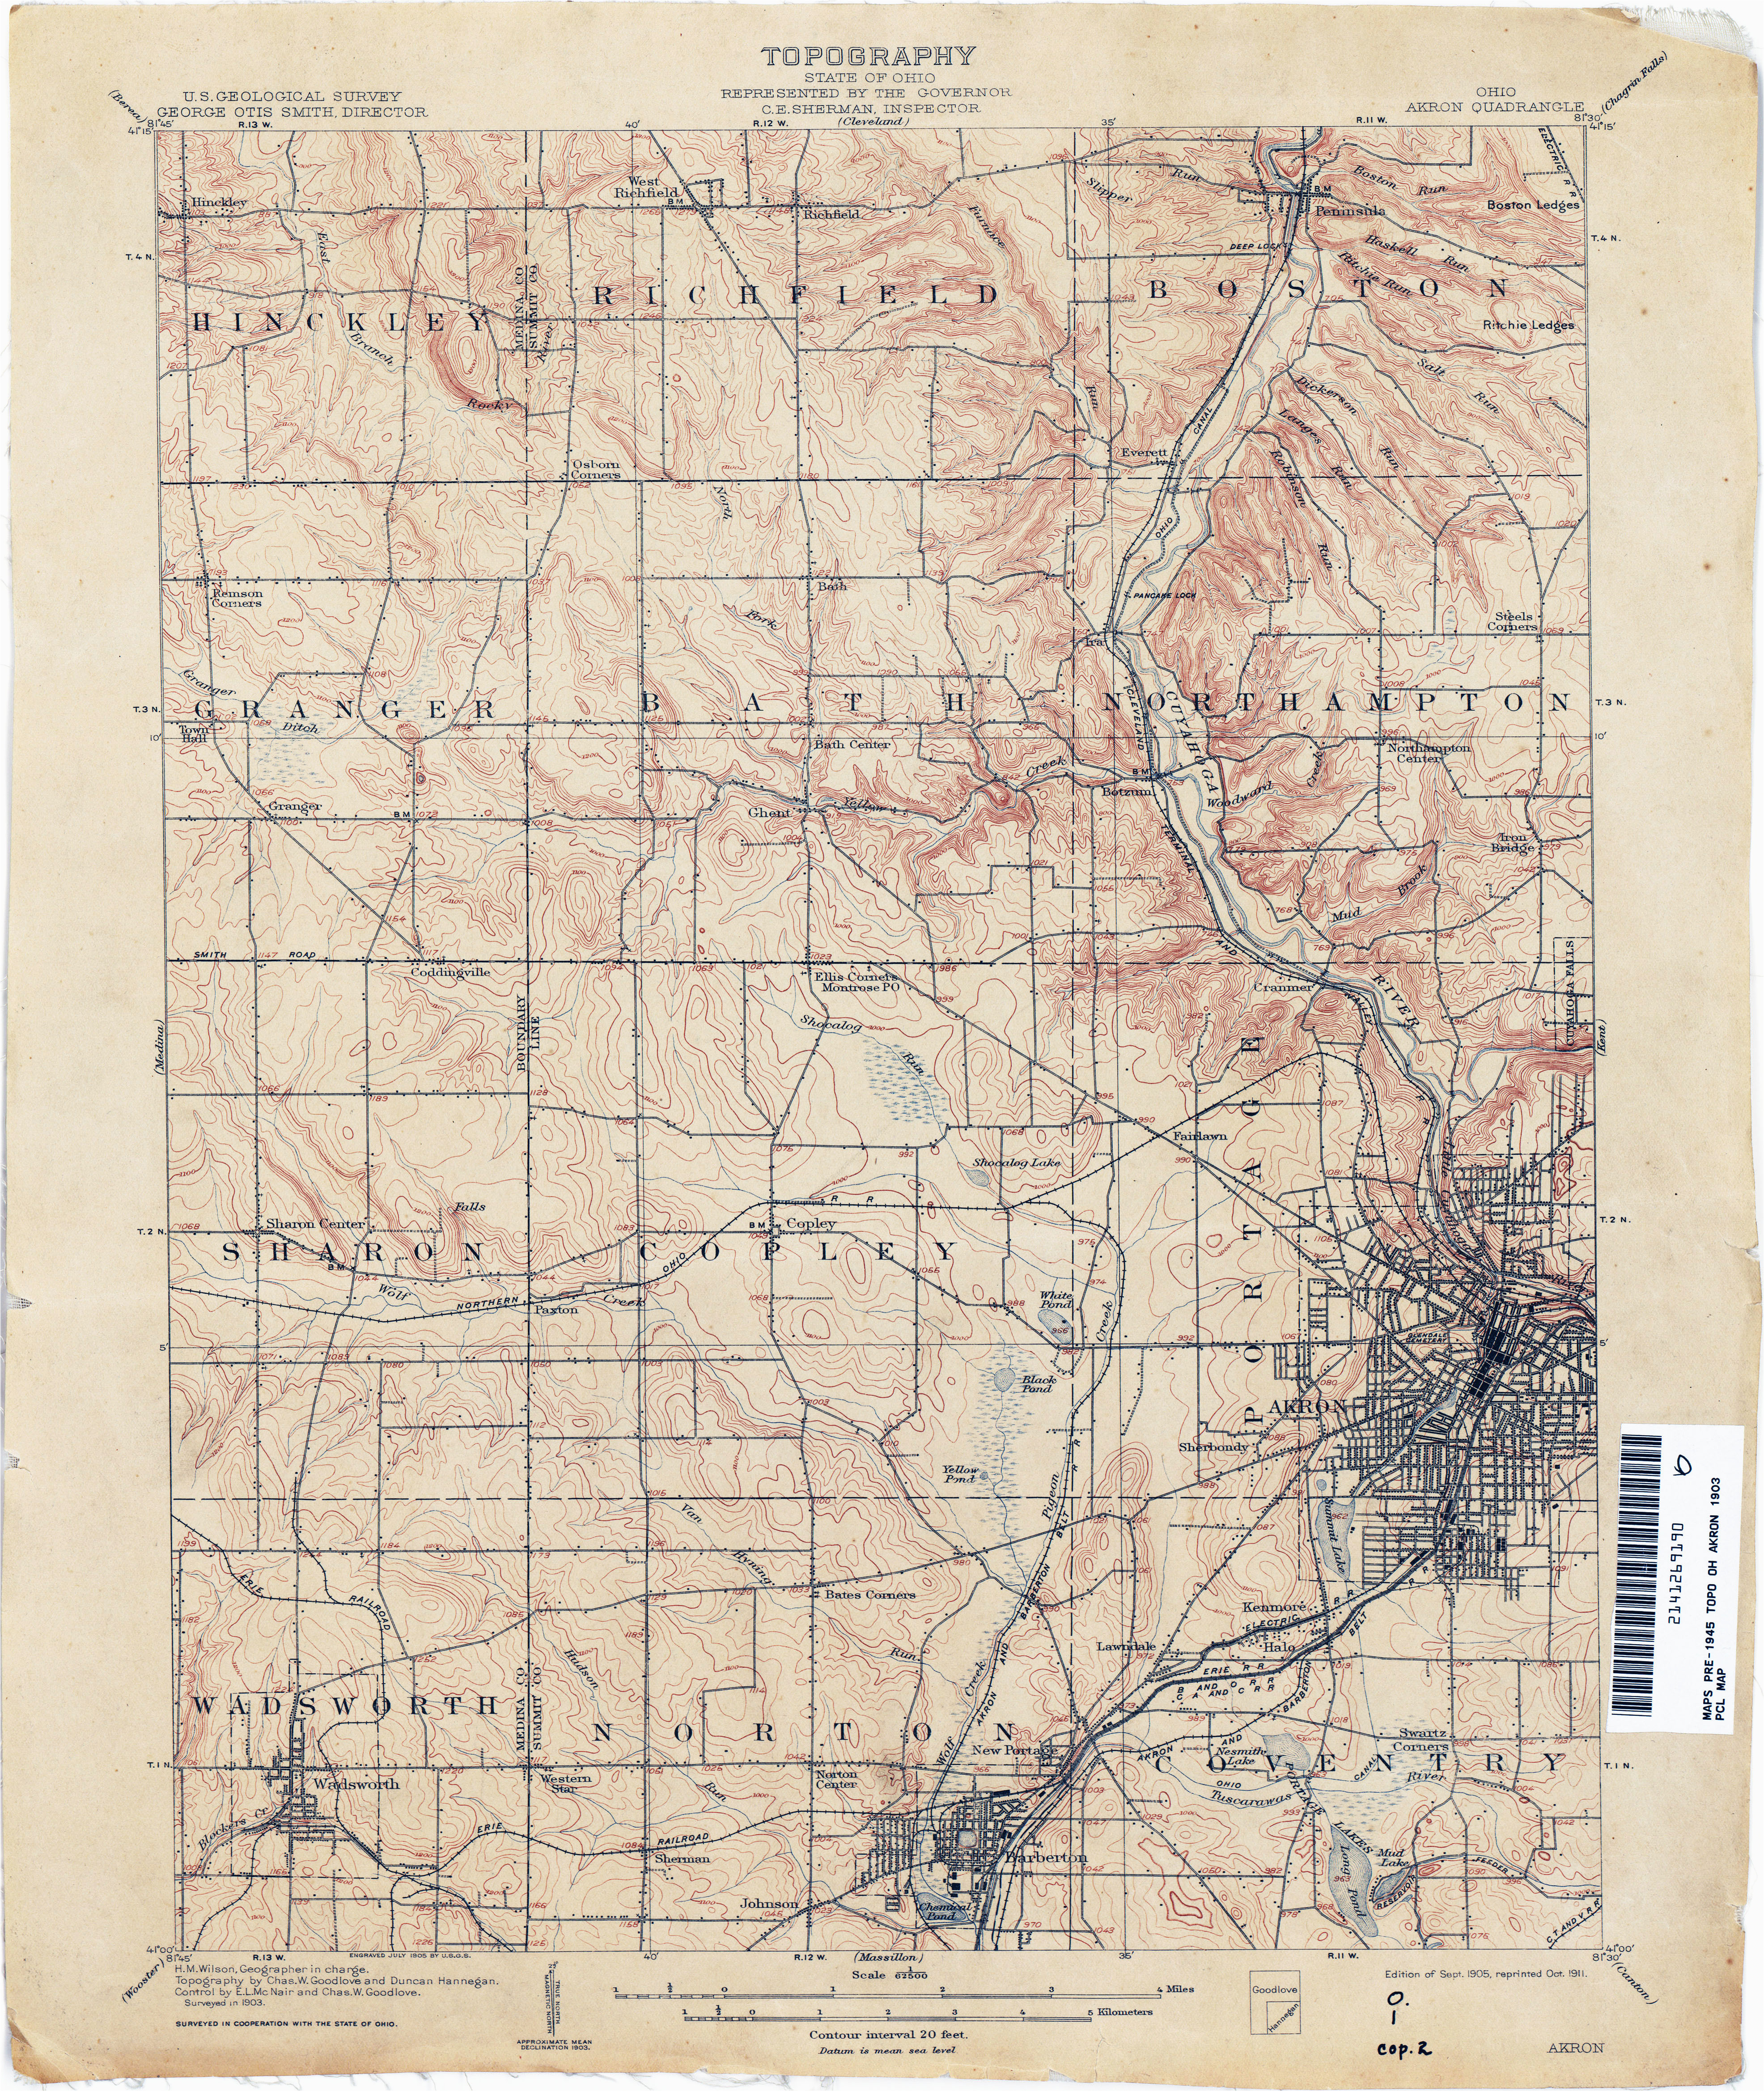 West Jefferson Ohio Map Ohio Historical topographic Maps Perry Castaa Eda Map Collection